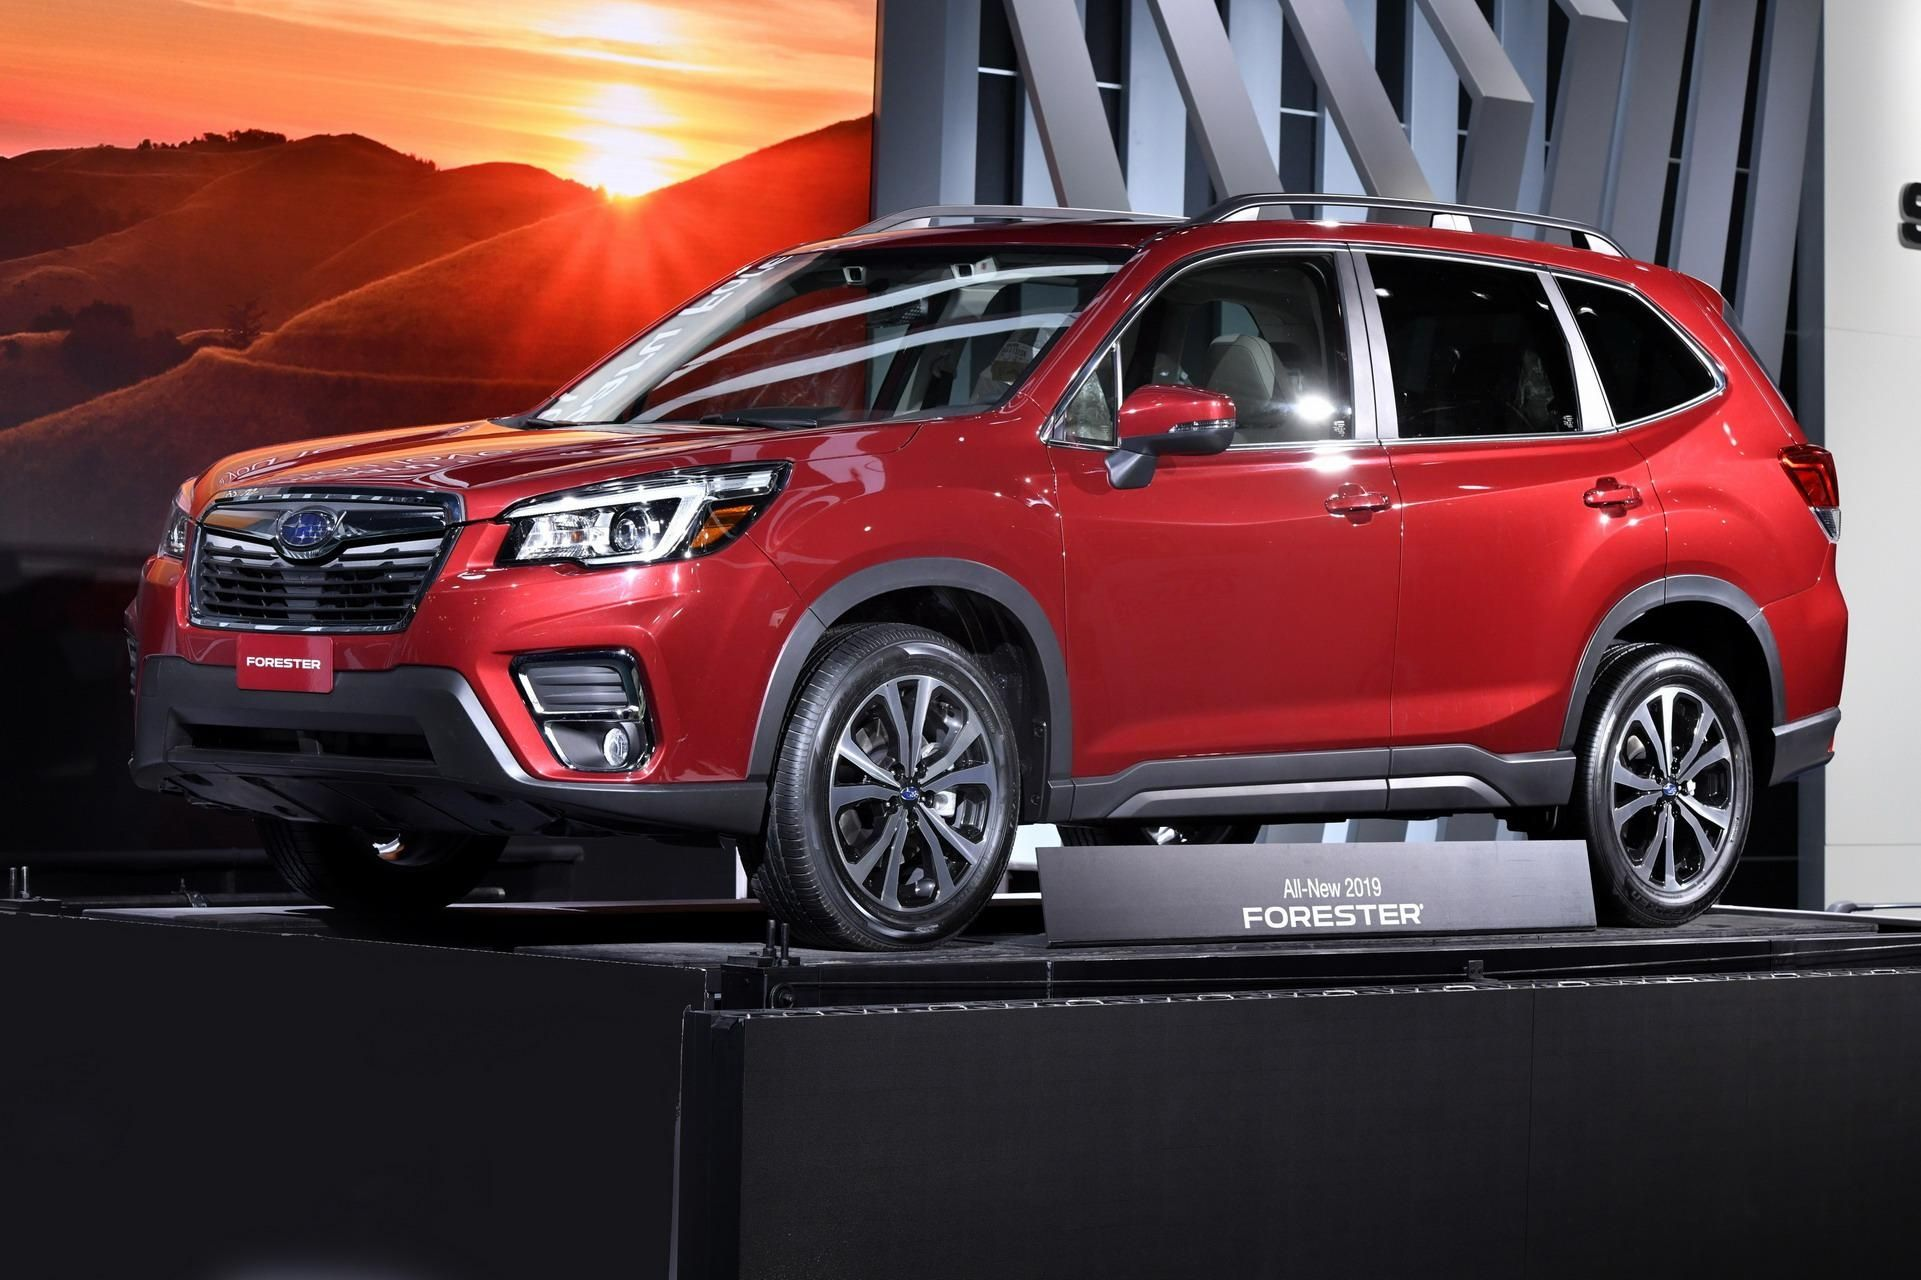 2019 Subaru Forester Plays It Safe Gets More Room And Tech Drops